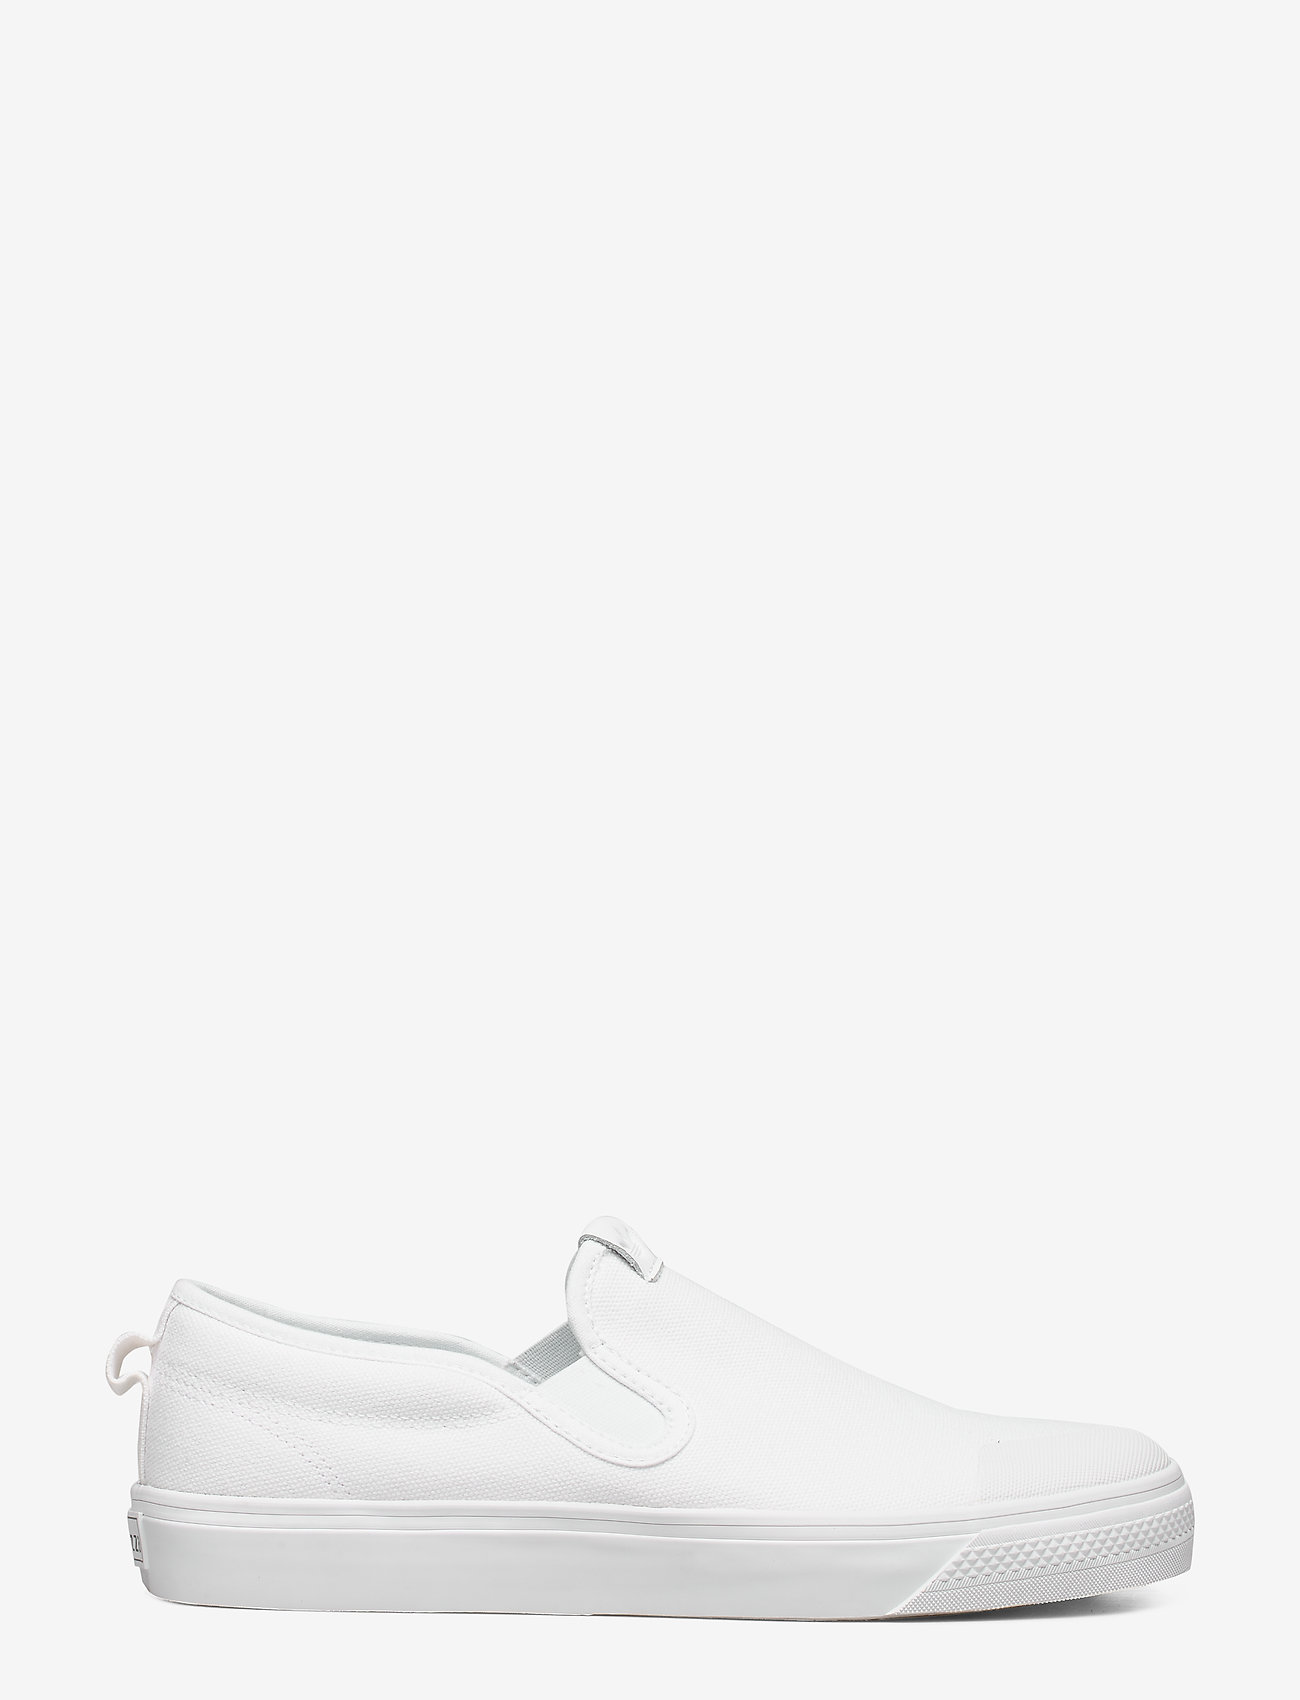 adidas Originals - NIZZA SLIP ON - baskets slip-ons - ftwwht/ftwwht/ftwwht - 1